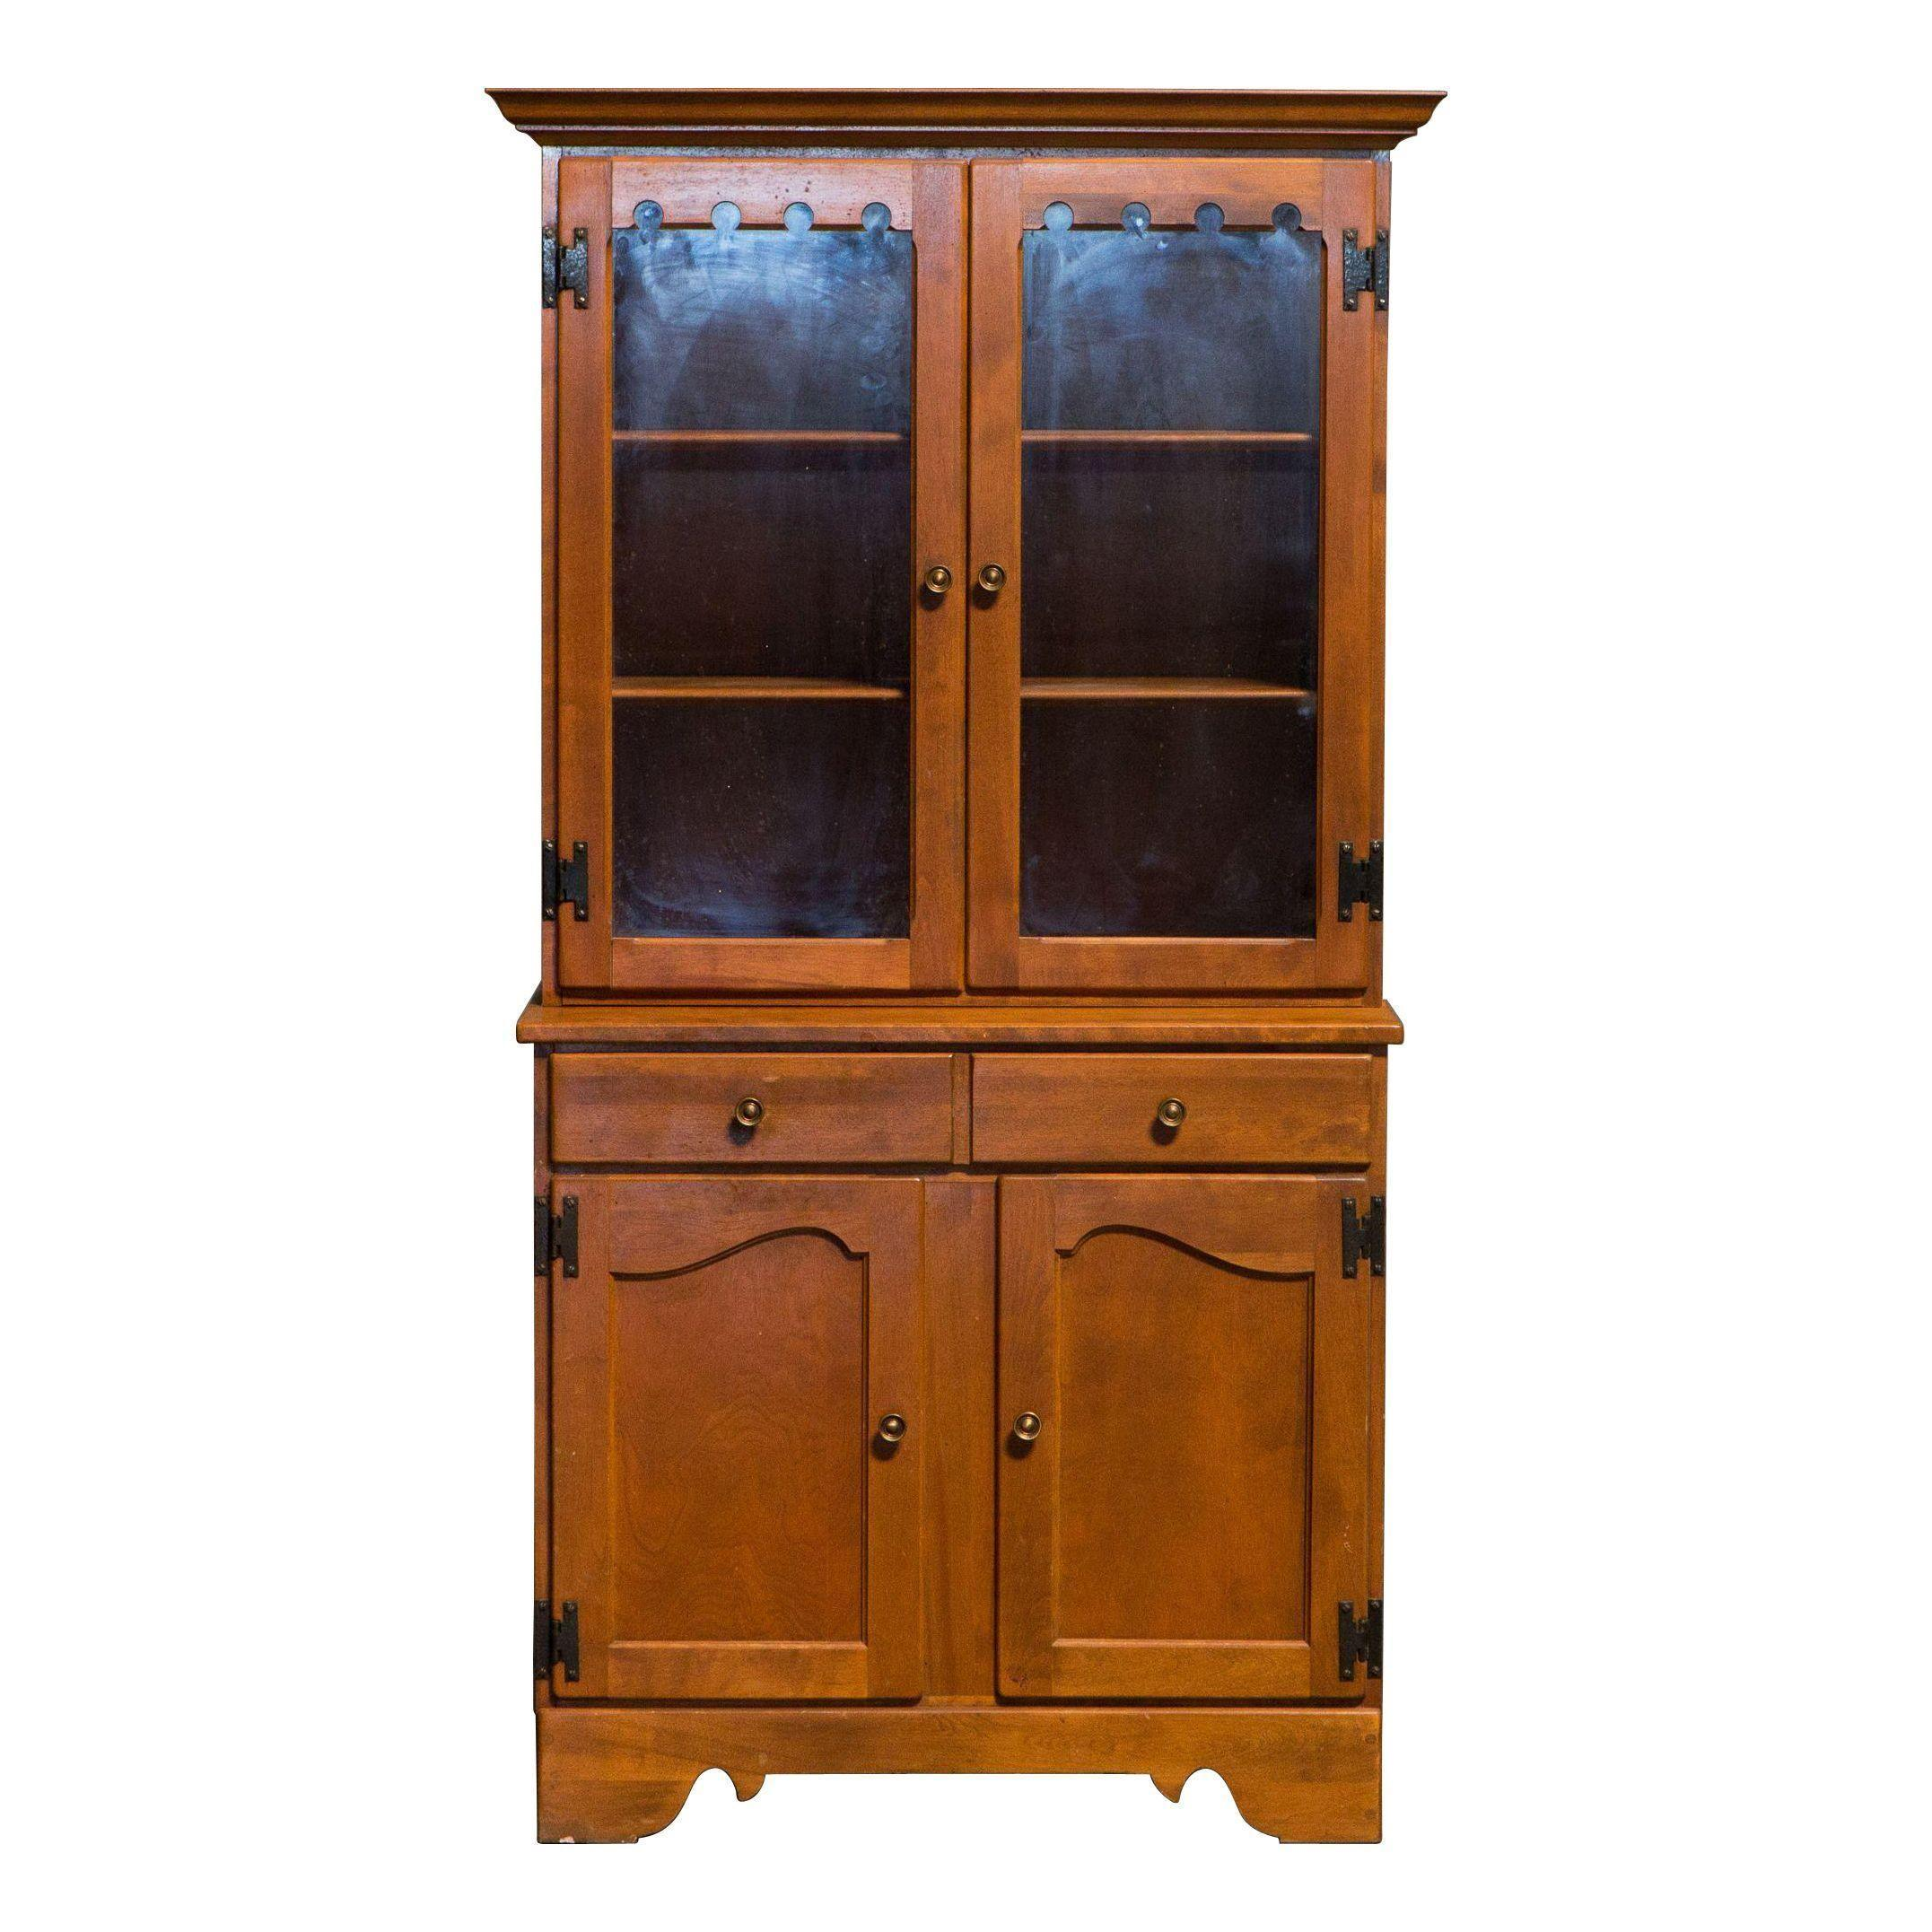 Vintage Ethan Allen China Cabinet / Display Hutch